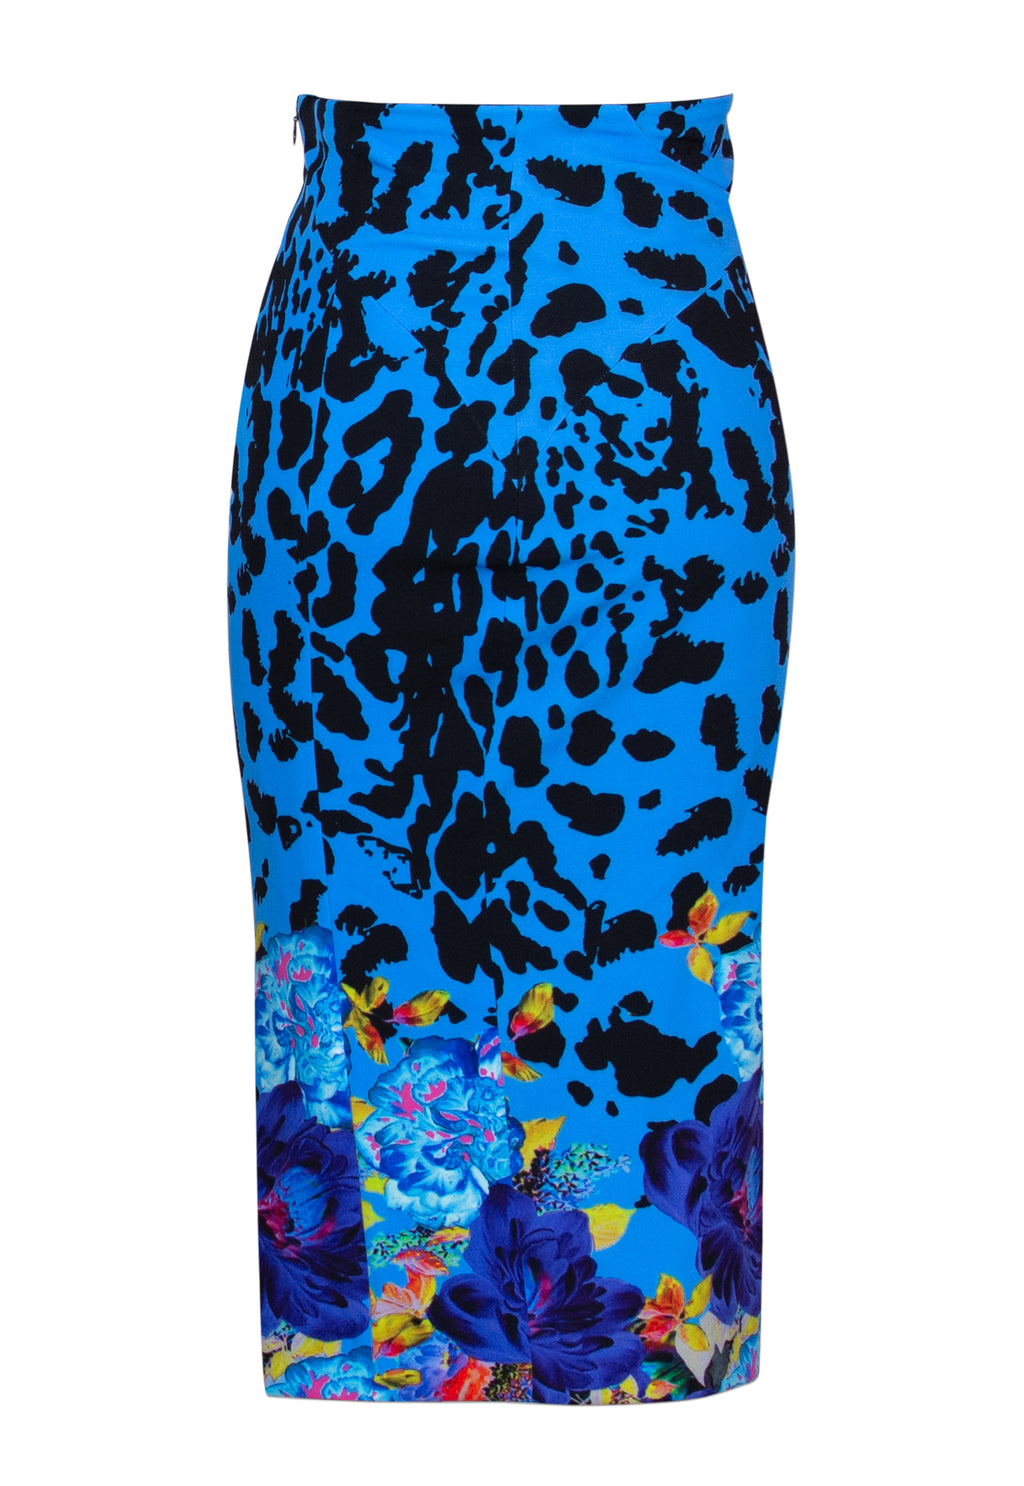 Jezebel Blue Stretch Skirt